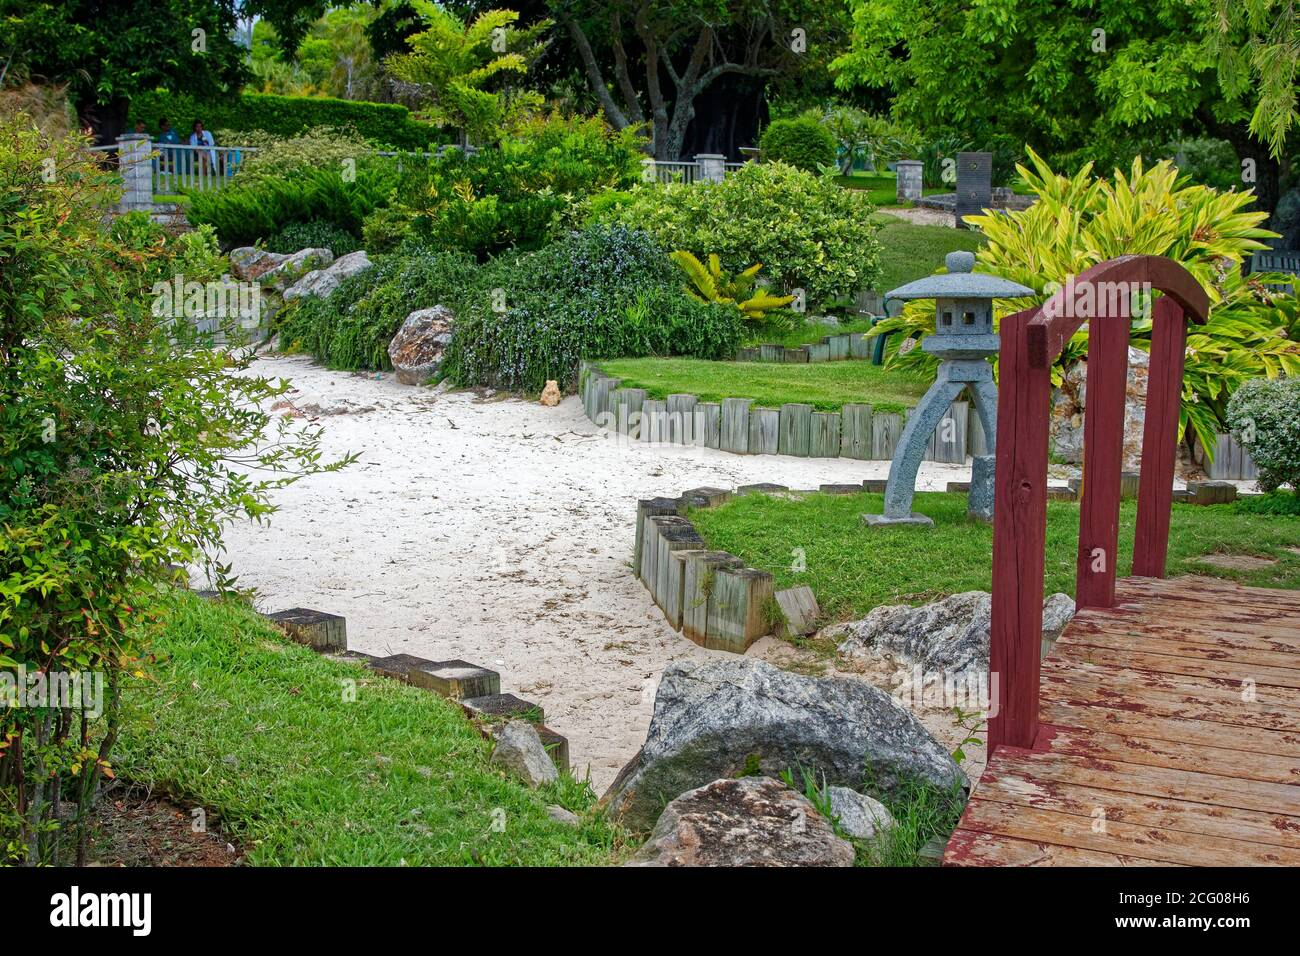 Zen Bridge Garden High Resolution Stock Photography And Images Alamy